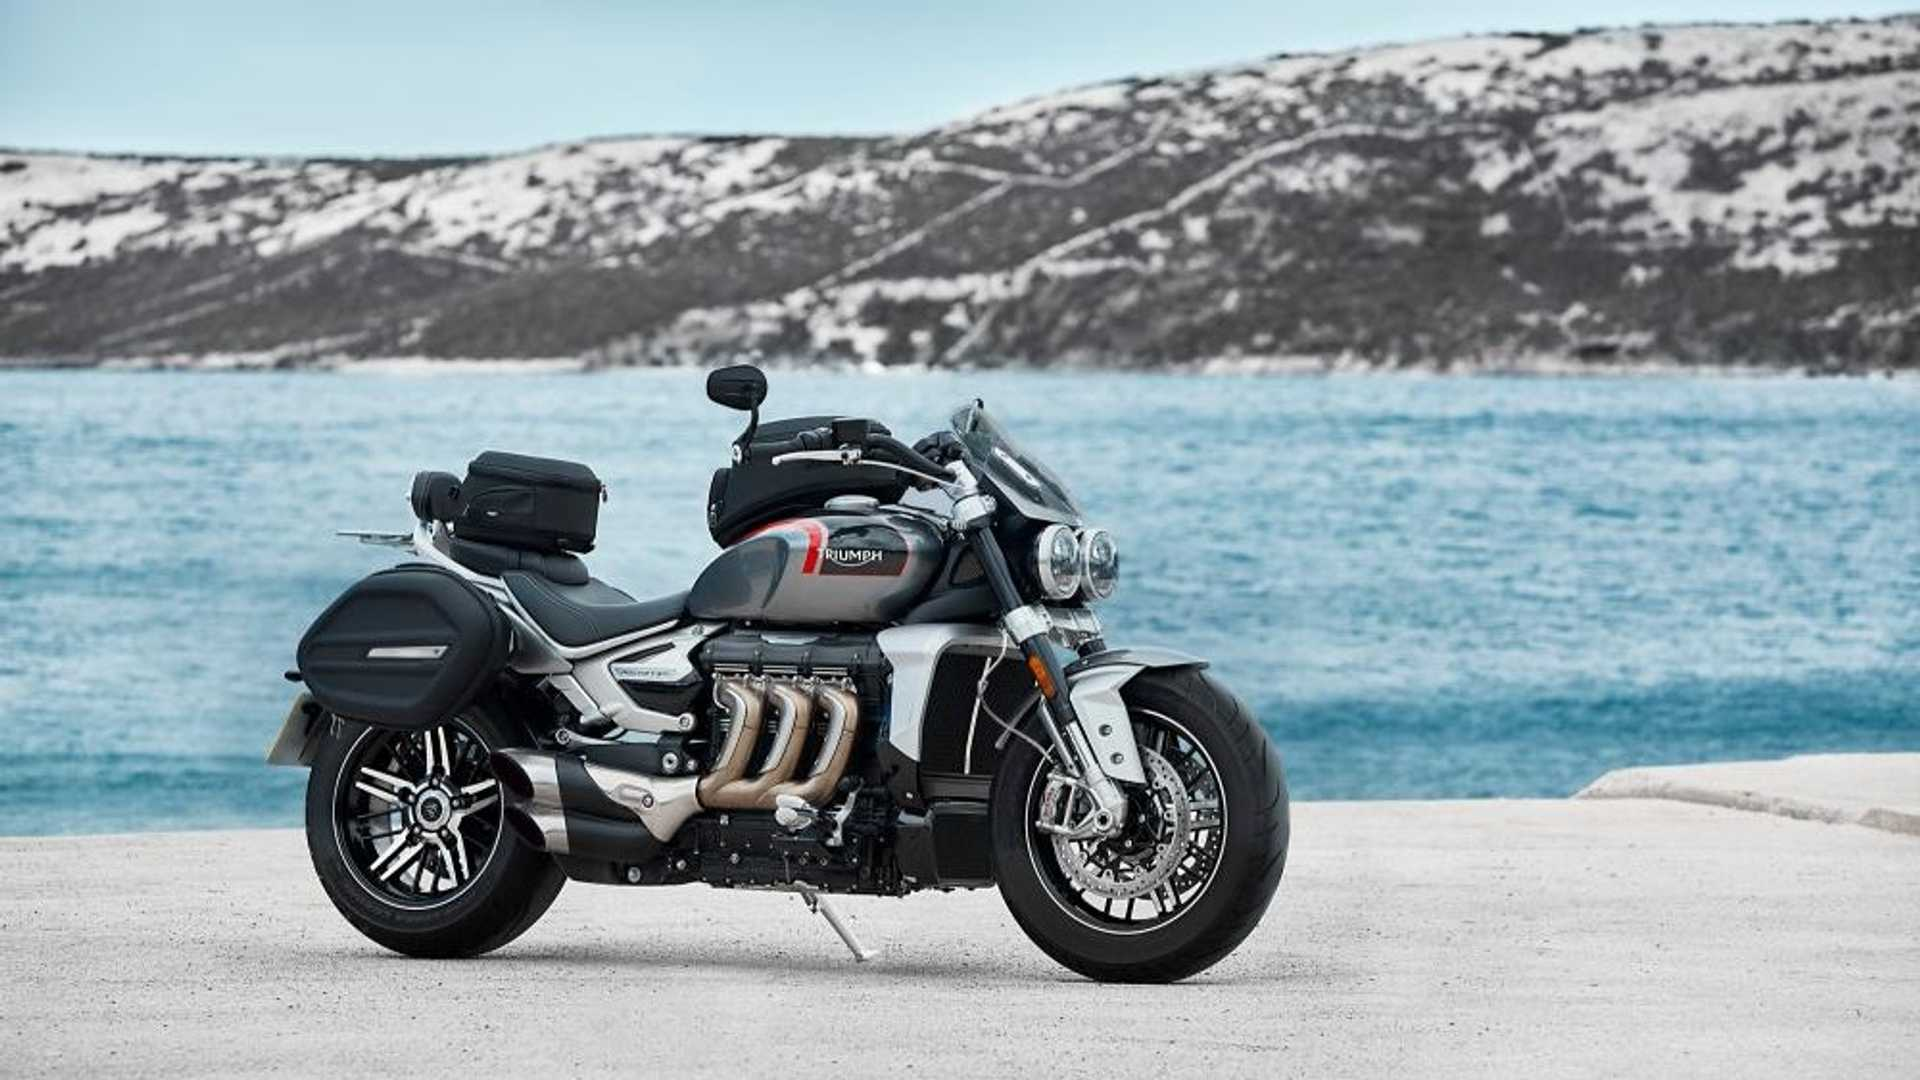 2020 Triumph Rocket 3 accessories